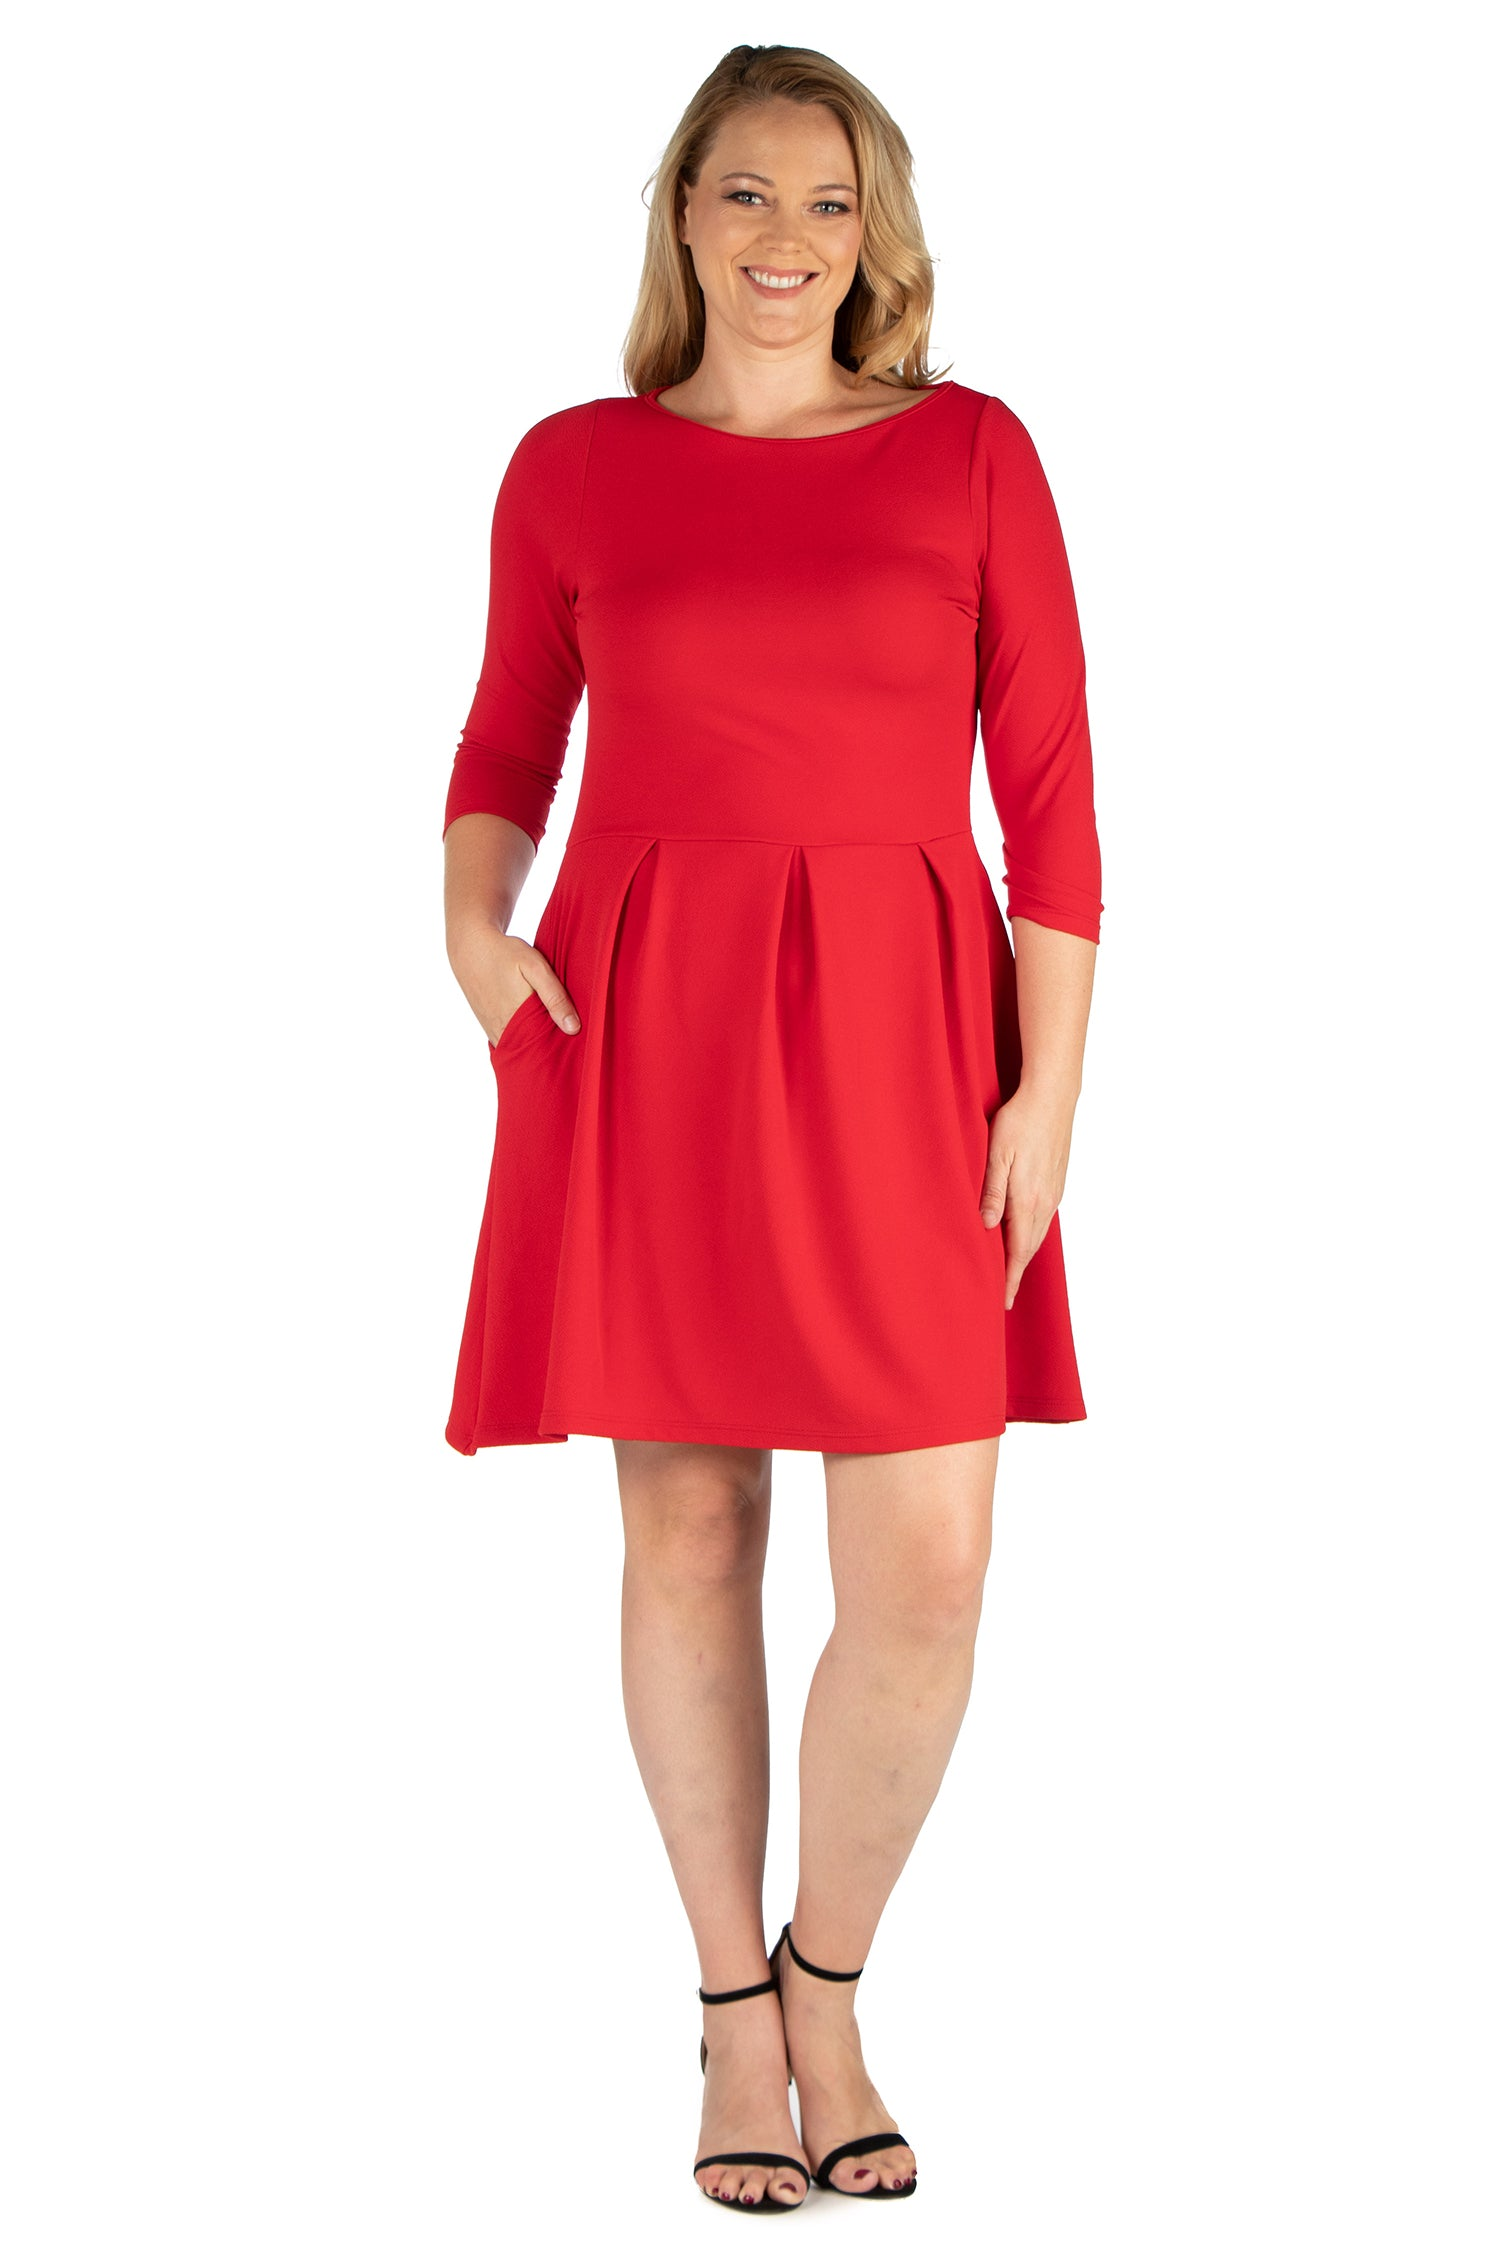 24seven Comfort Apparel Perfect Fit and Flare Plus Size Pocket Dress-DRESSES-24Seven Comfort Apparel-RED-1X-24/7 Comfort Apparel